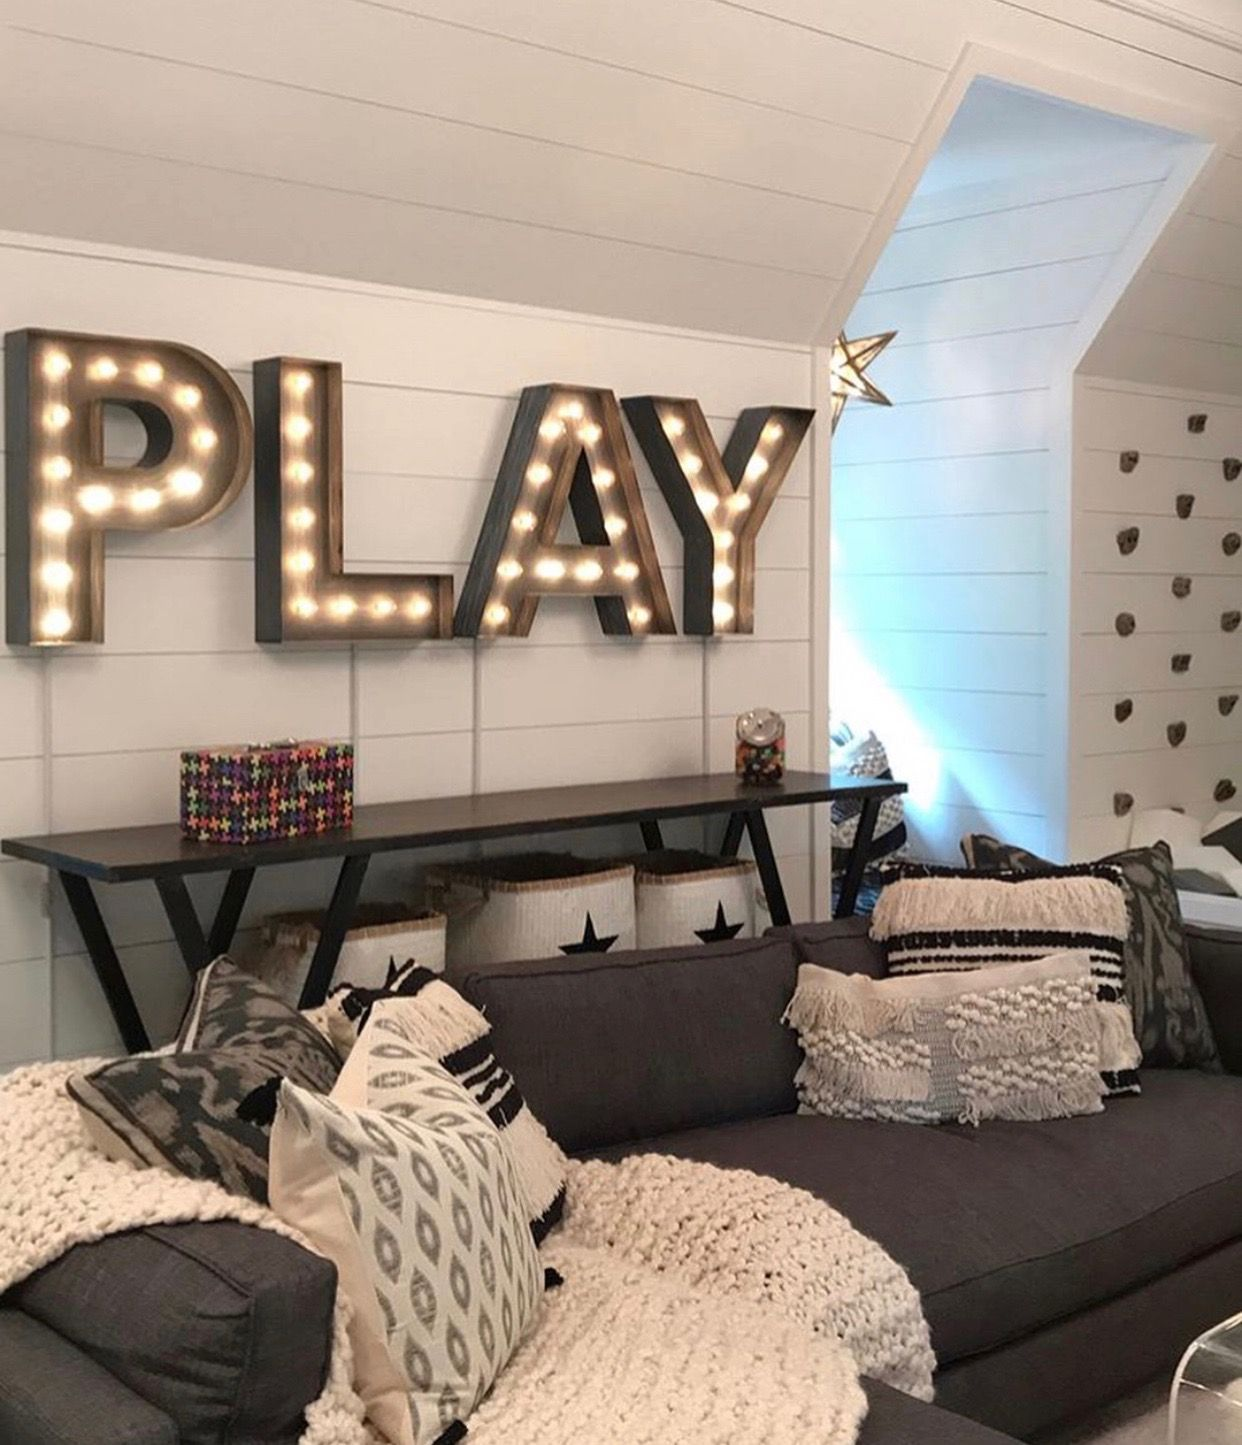 Pin By Brittney On The House Toy Room Decor Game Room